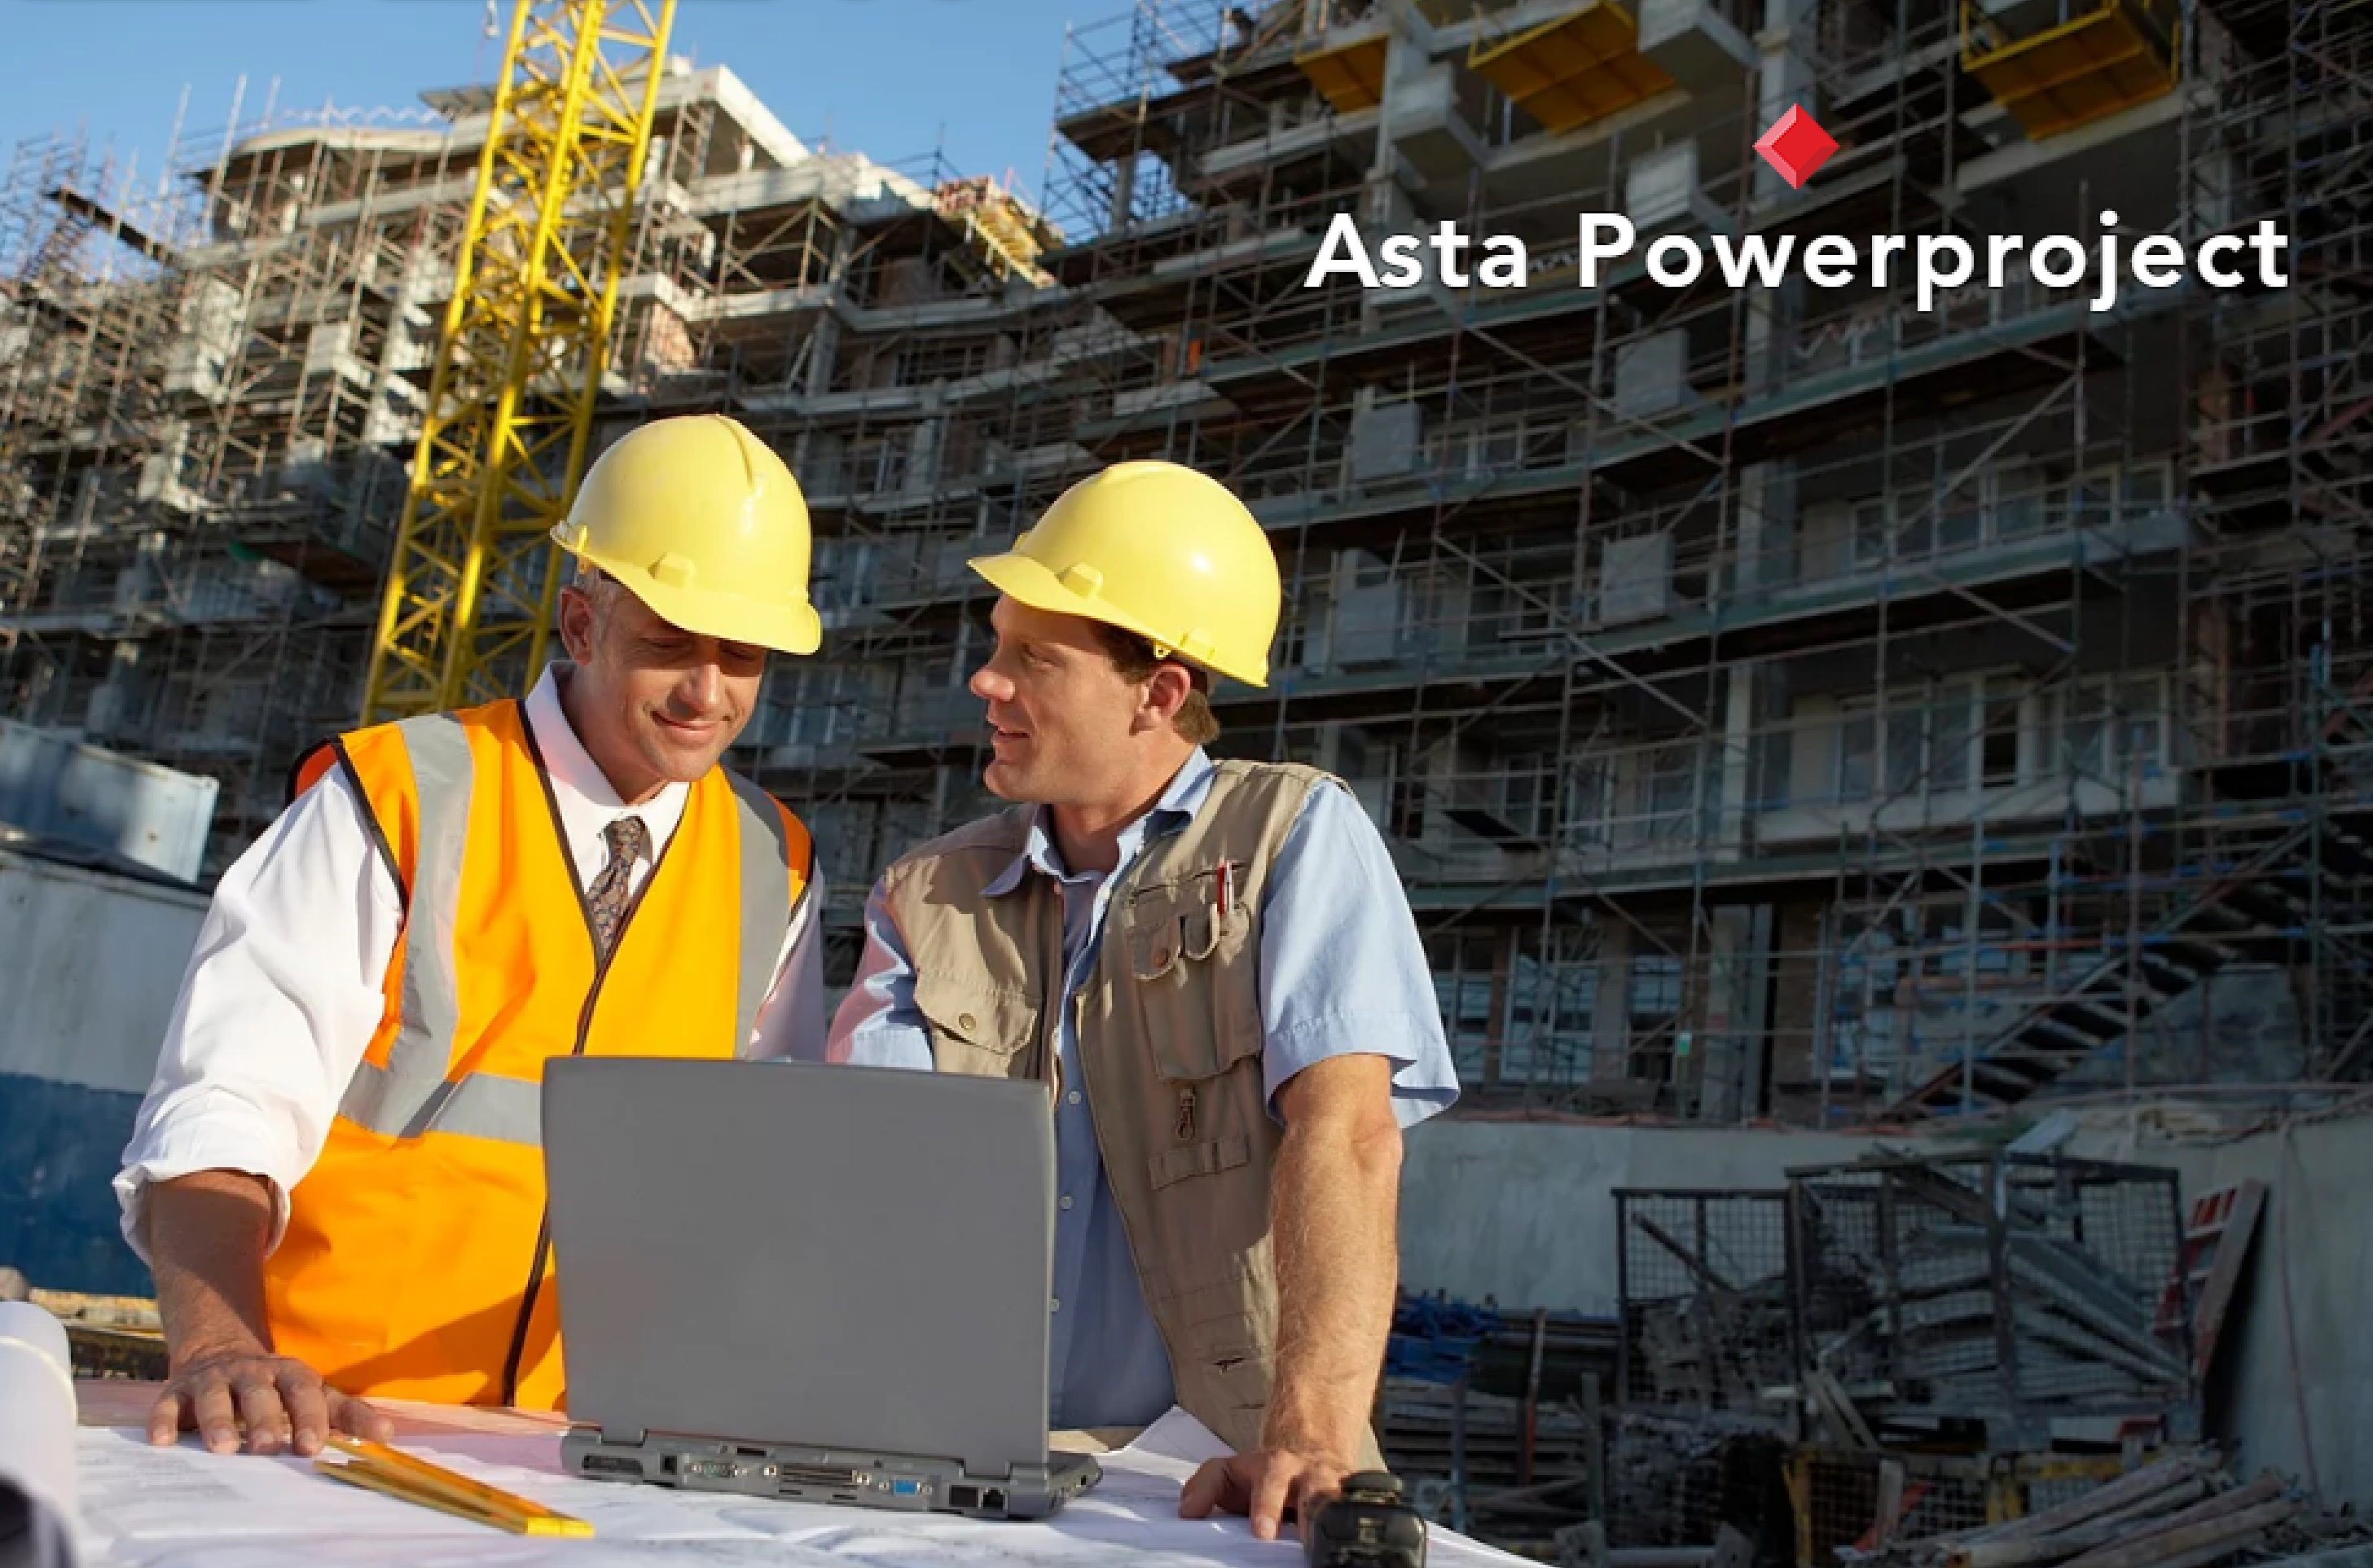 Приглашаем вас на вебинар «Asta Powerproject: залог успеха реализации проектов!»